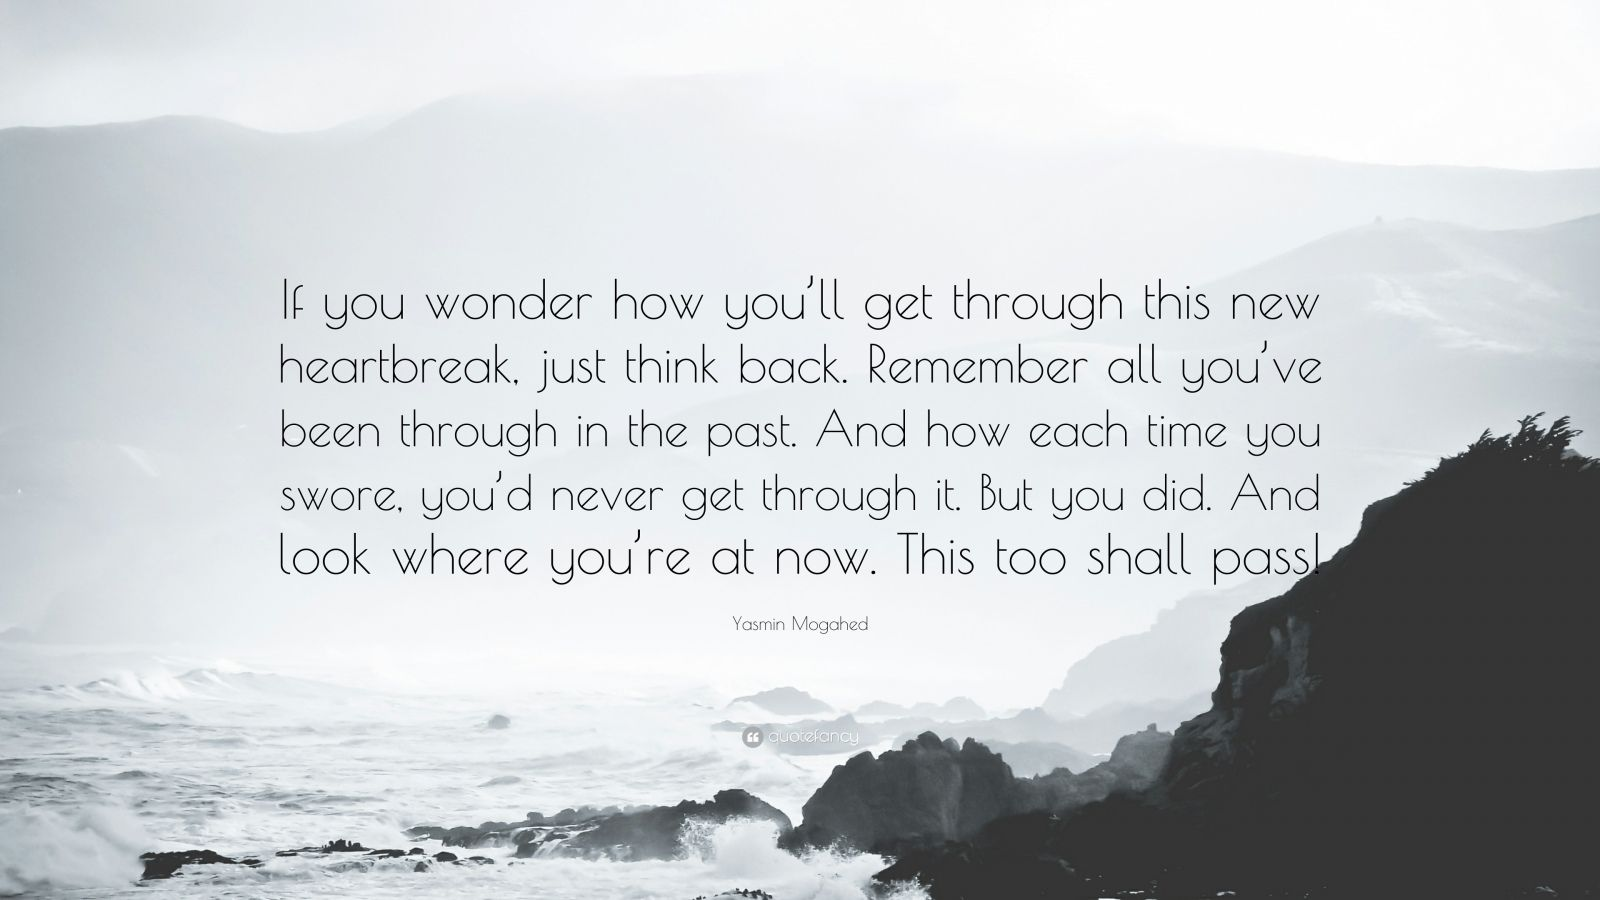 """Yasmin Mogahed Quote: """"If you wonder how you'll get through this new heartbreak, just think back. Remember all you've been through in the past. And how each time you swore, you'd never get through it. But you did. And look where you're at now. This too shall pass!"""""""